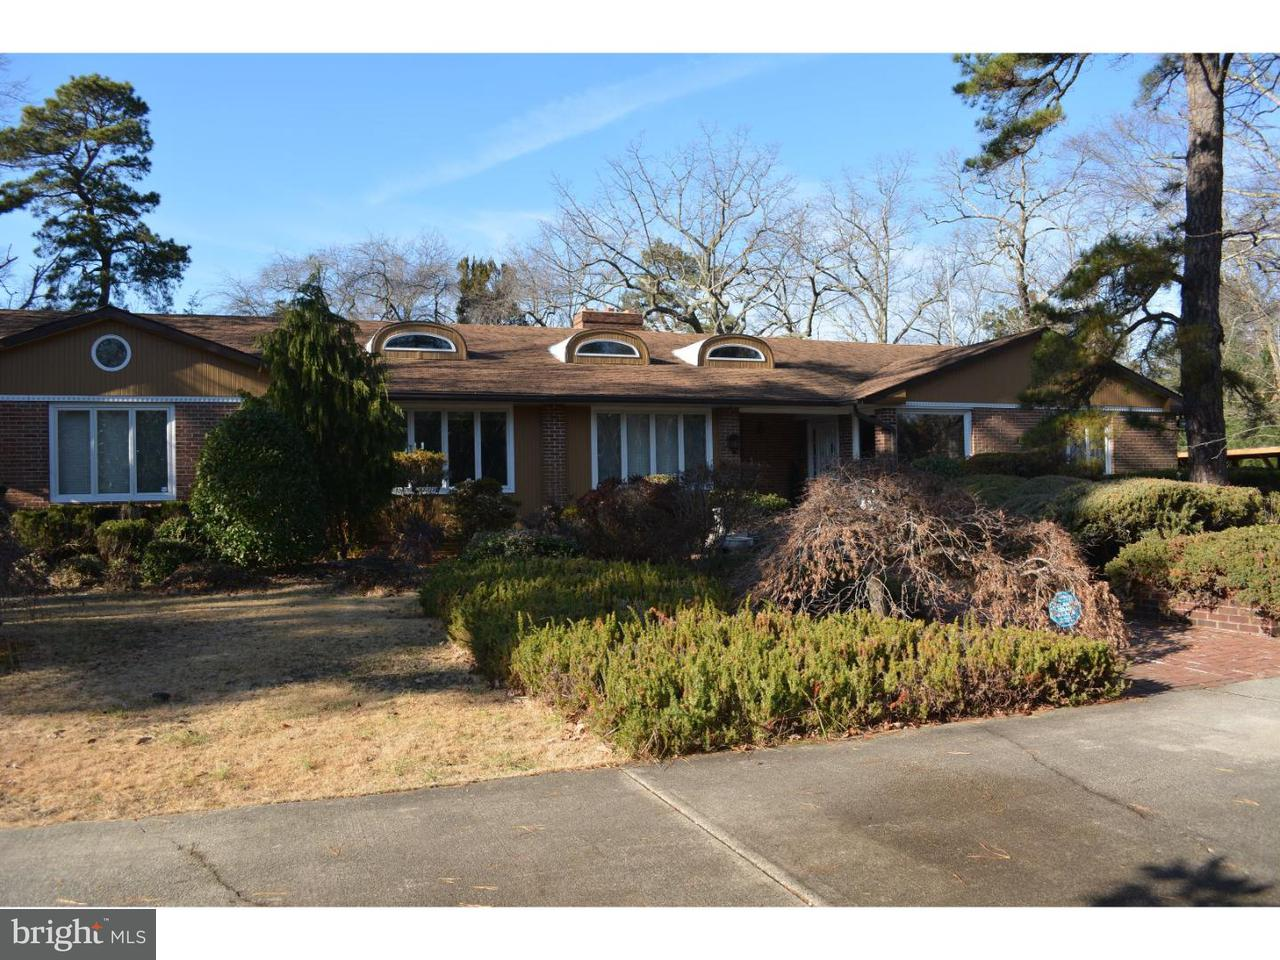 Single Family Home for Sale at 1208 ROBIN Road Millville, New Jersey 08332 United States